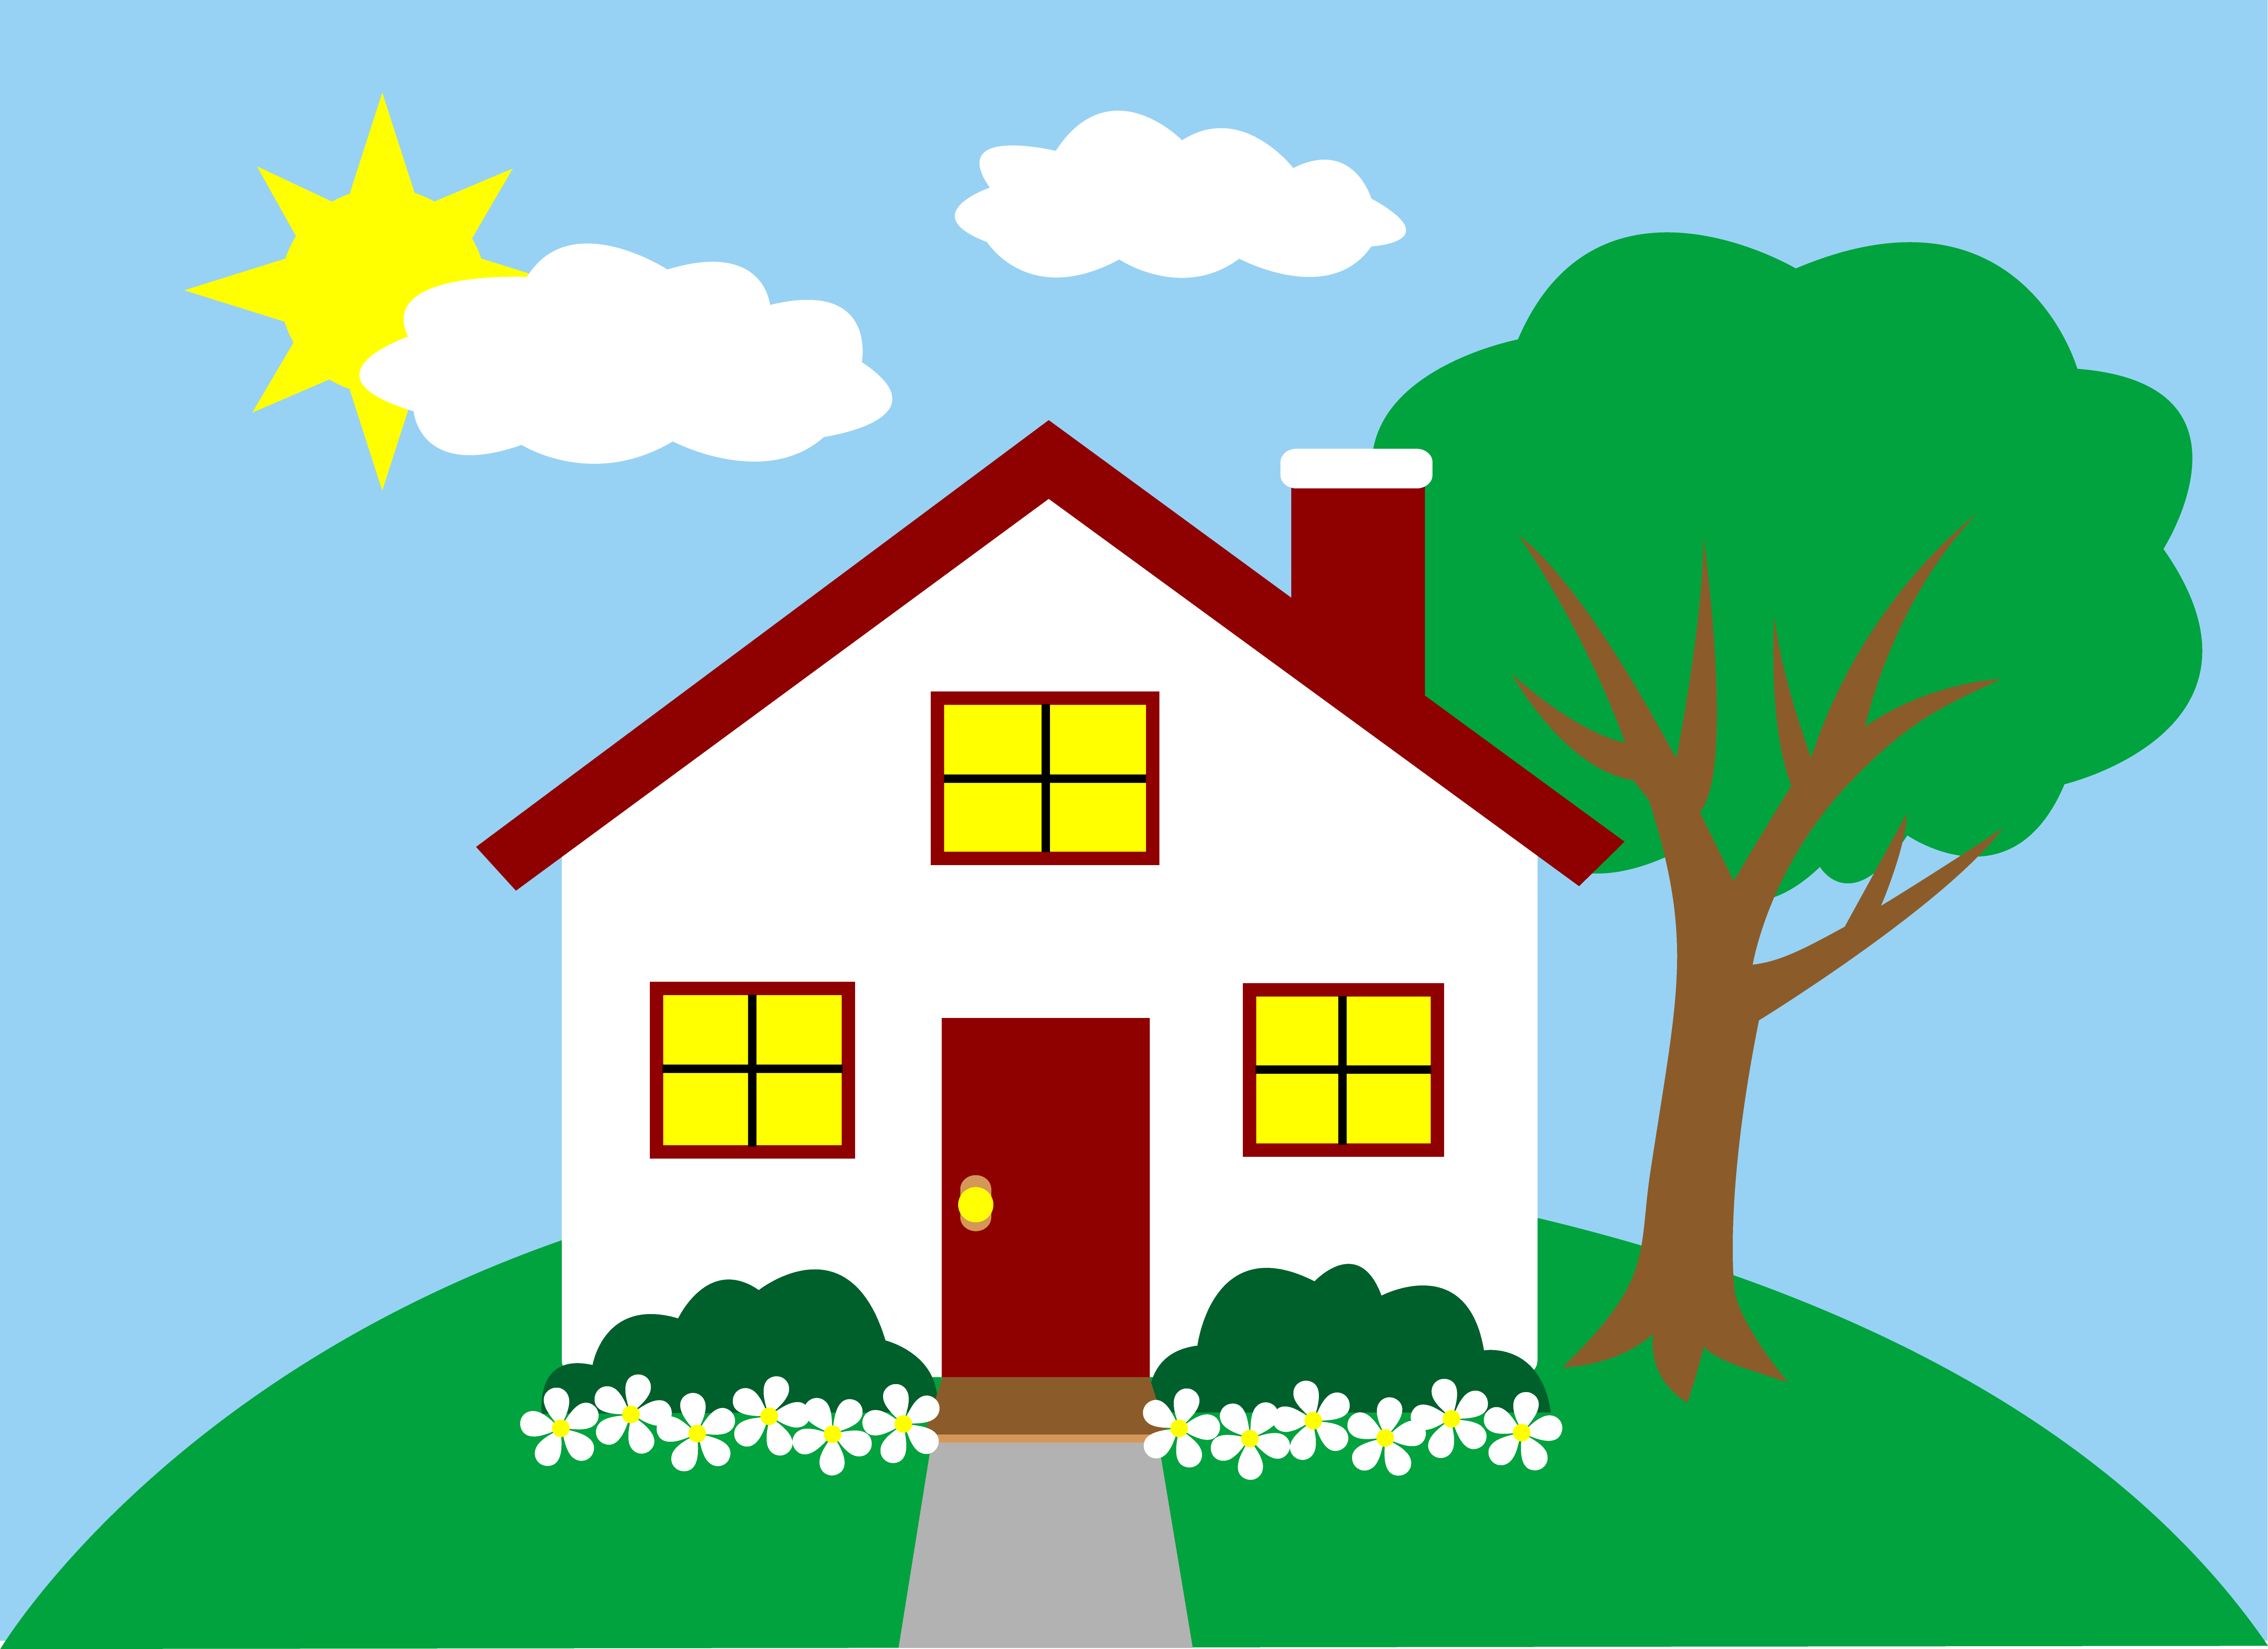 Home cliparts png stock Home Clipart - Clipart Kid png stock